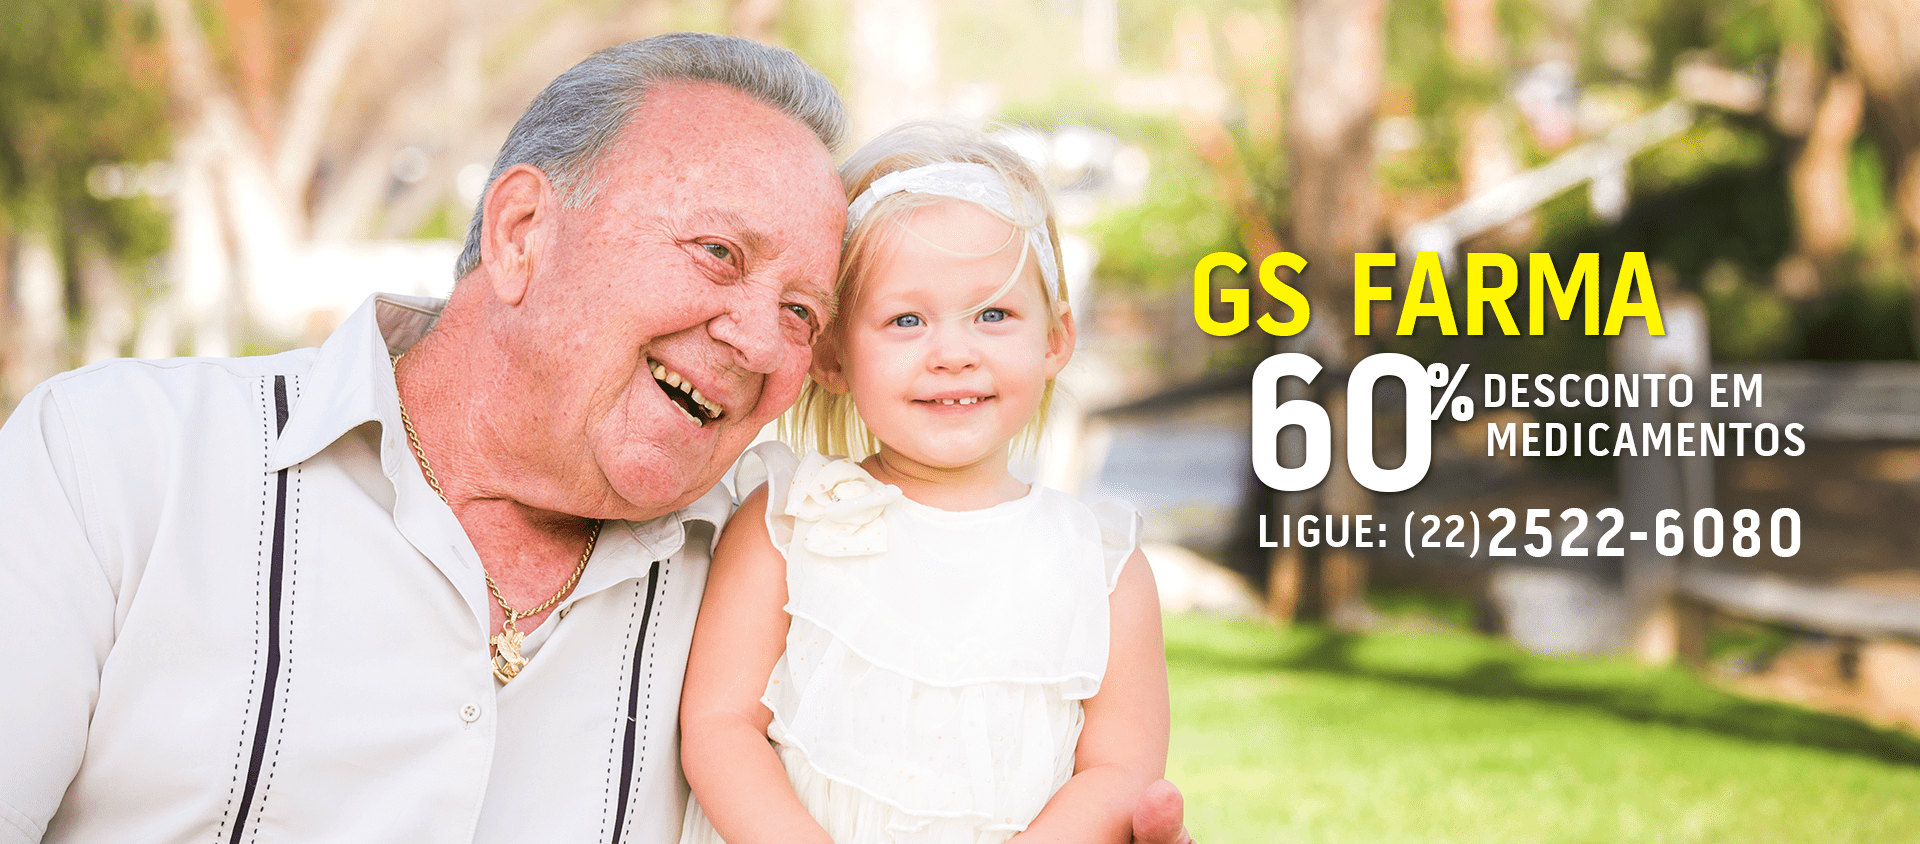 GS Farma, ligue agora